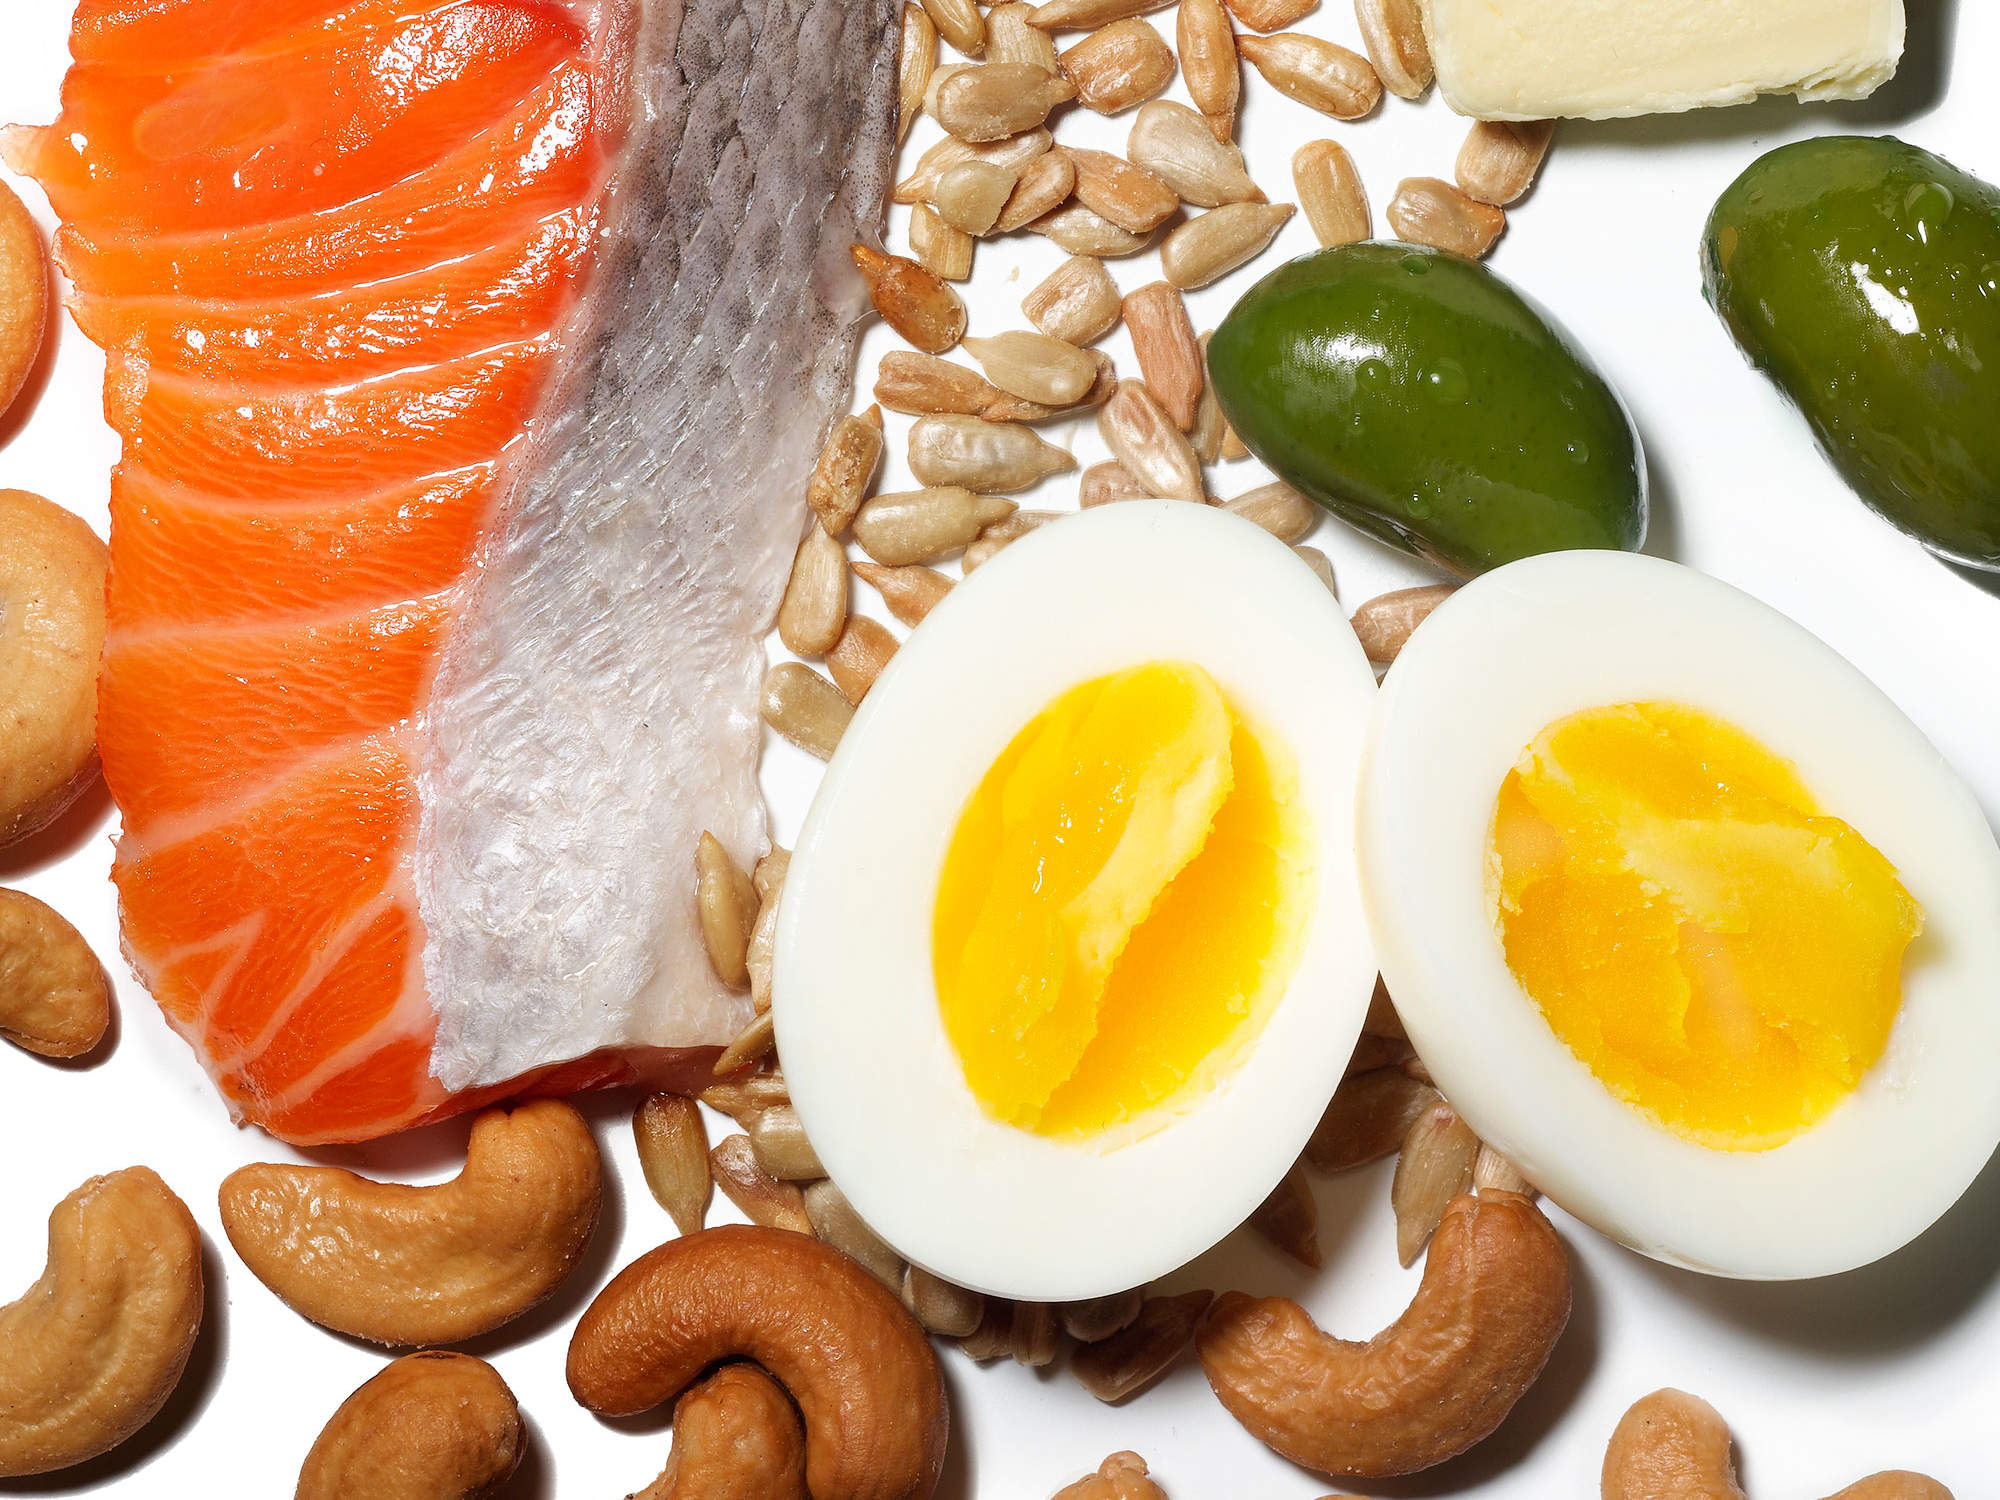 Healthy High-Fat Foods You Should Eat - Health